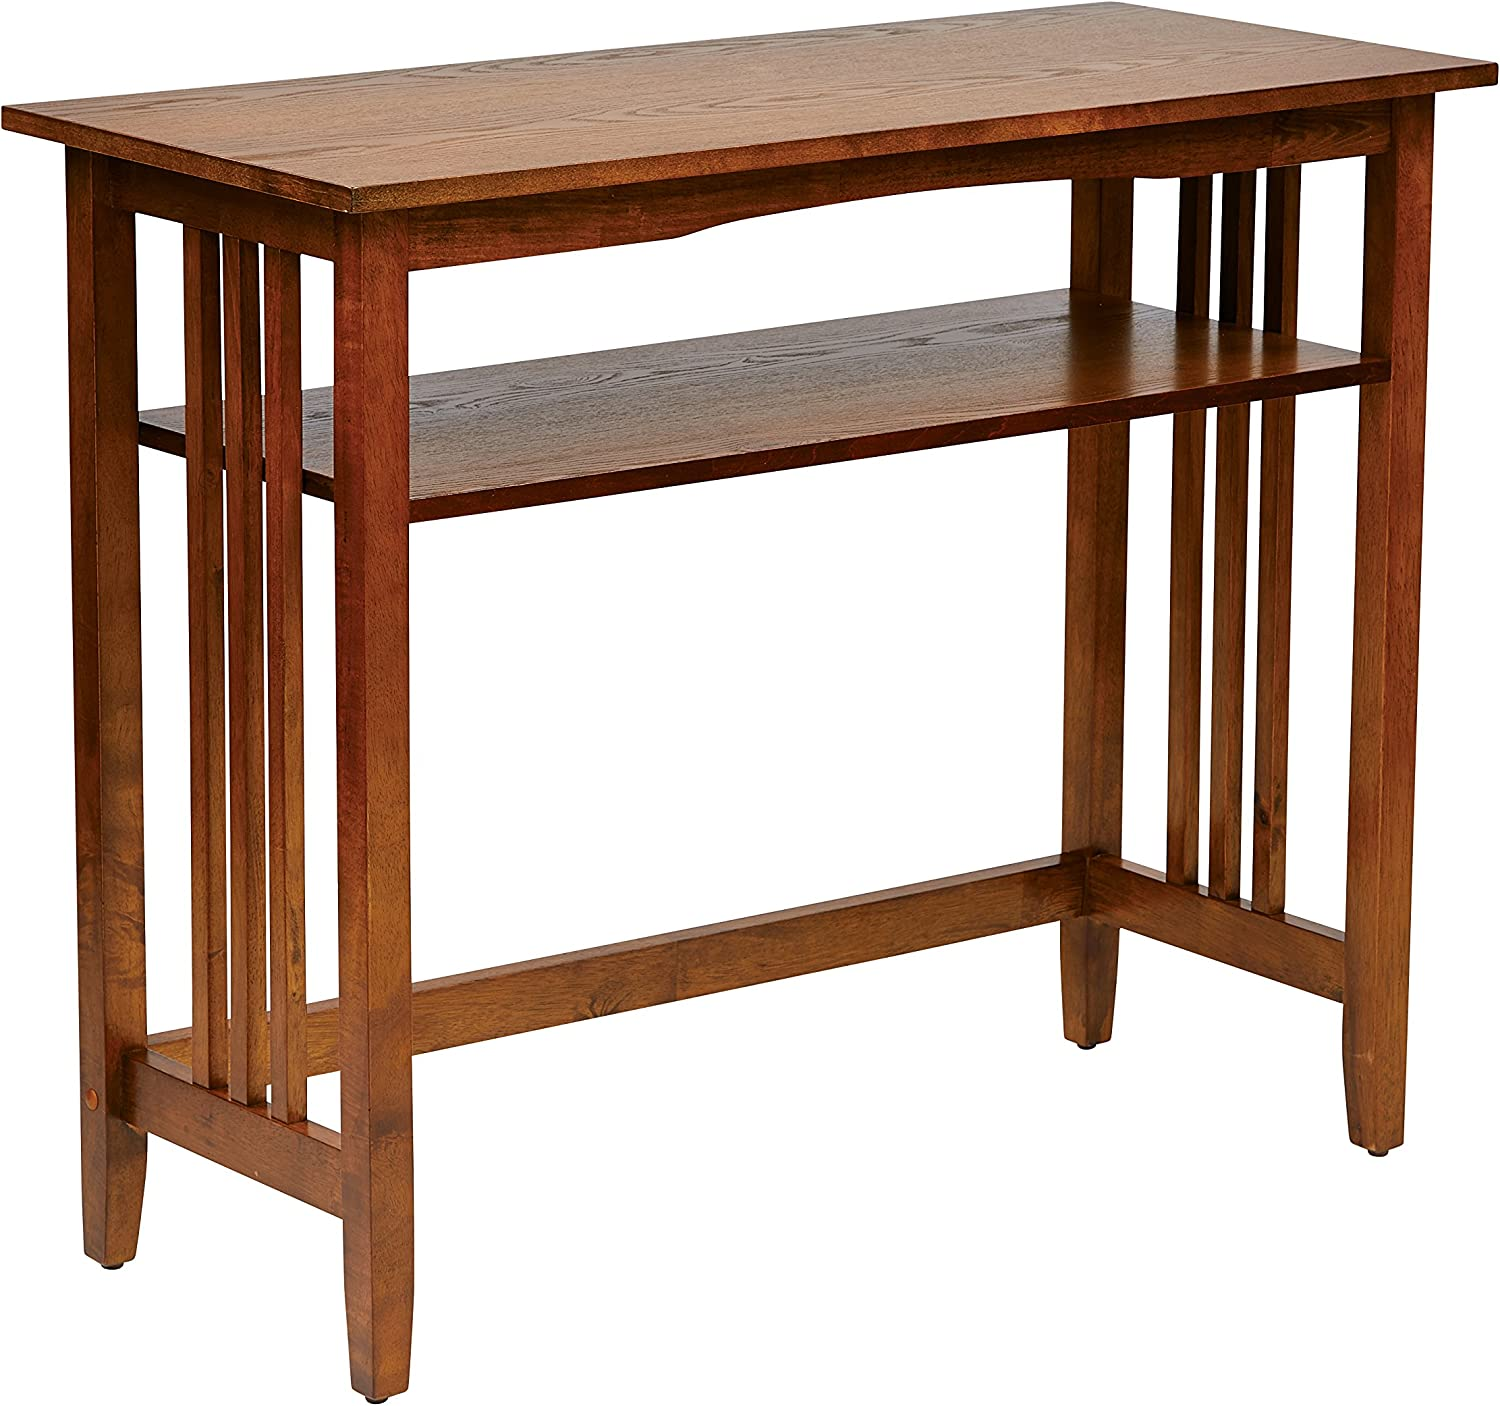 OSP Home Furnishings Sierra Solid Wood Foyer Table, Ash Finish